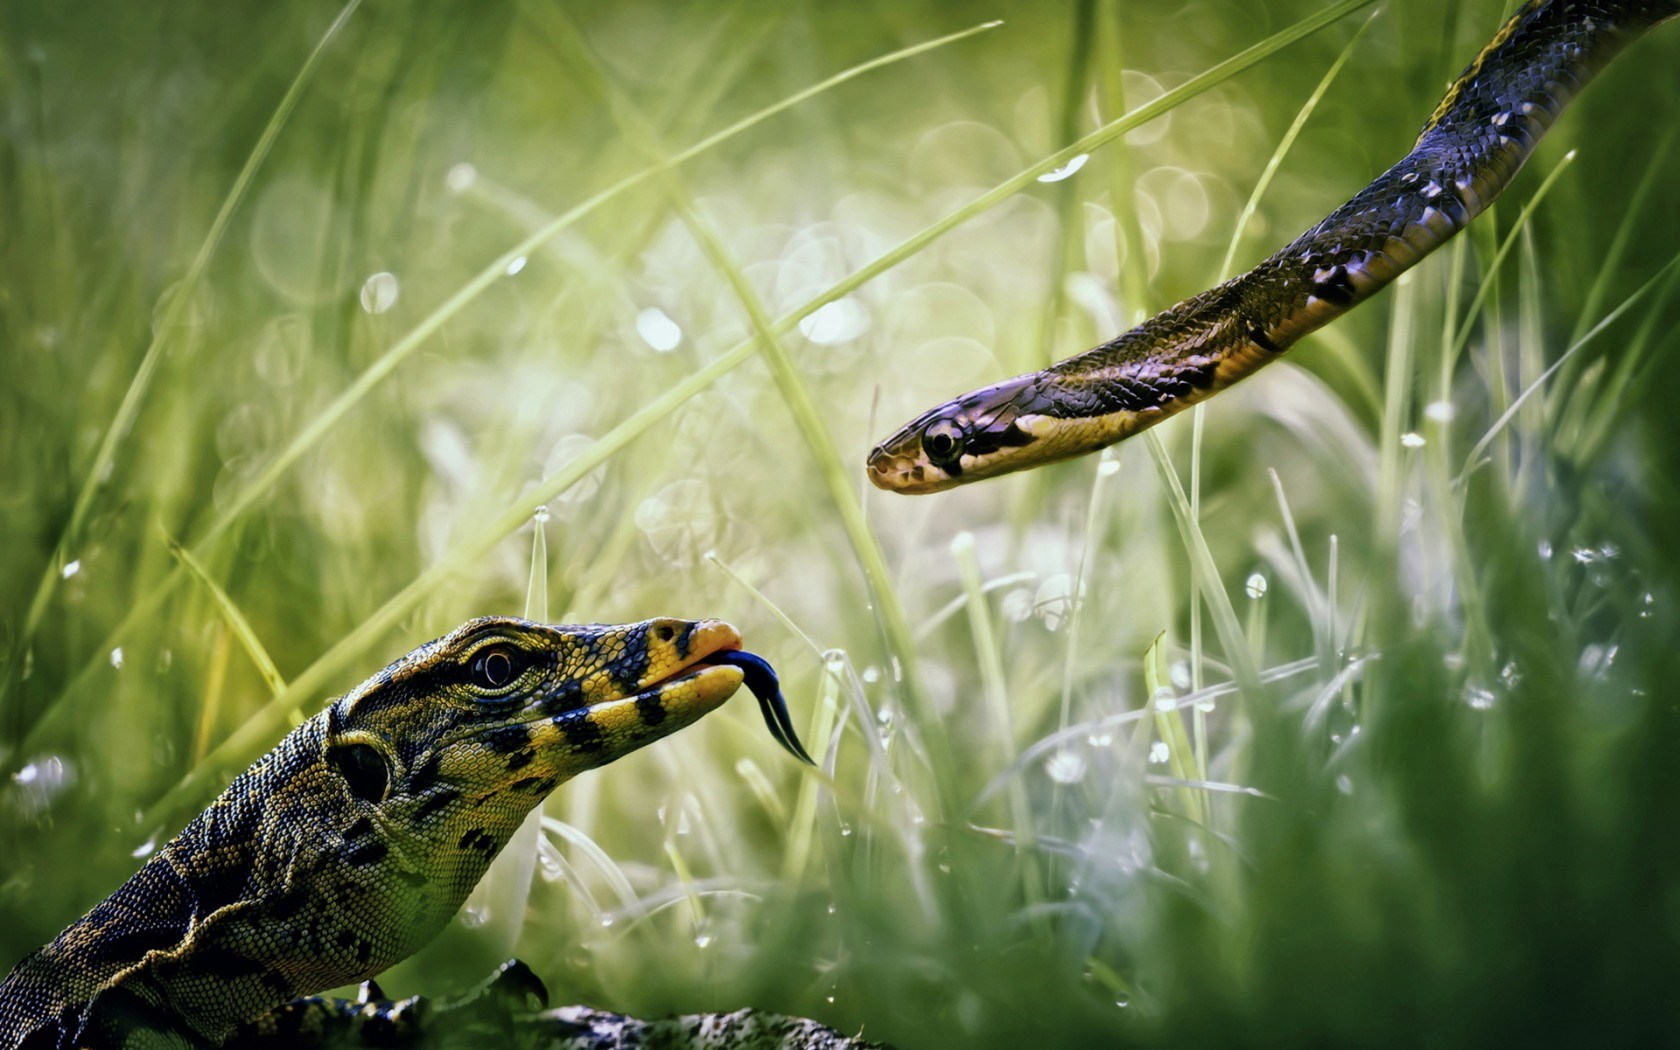 snake photo download